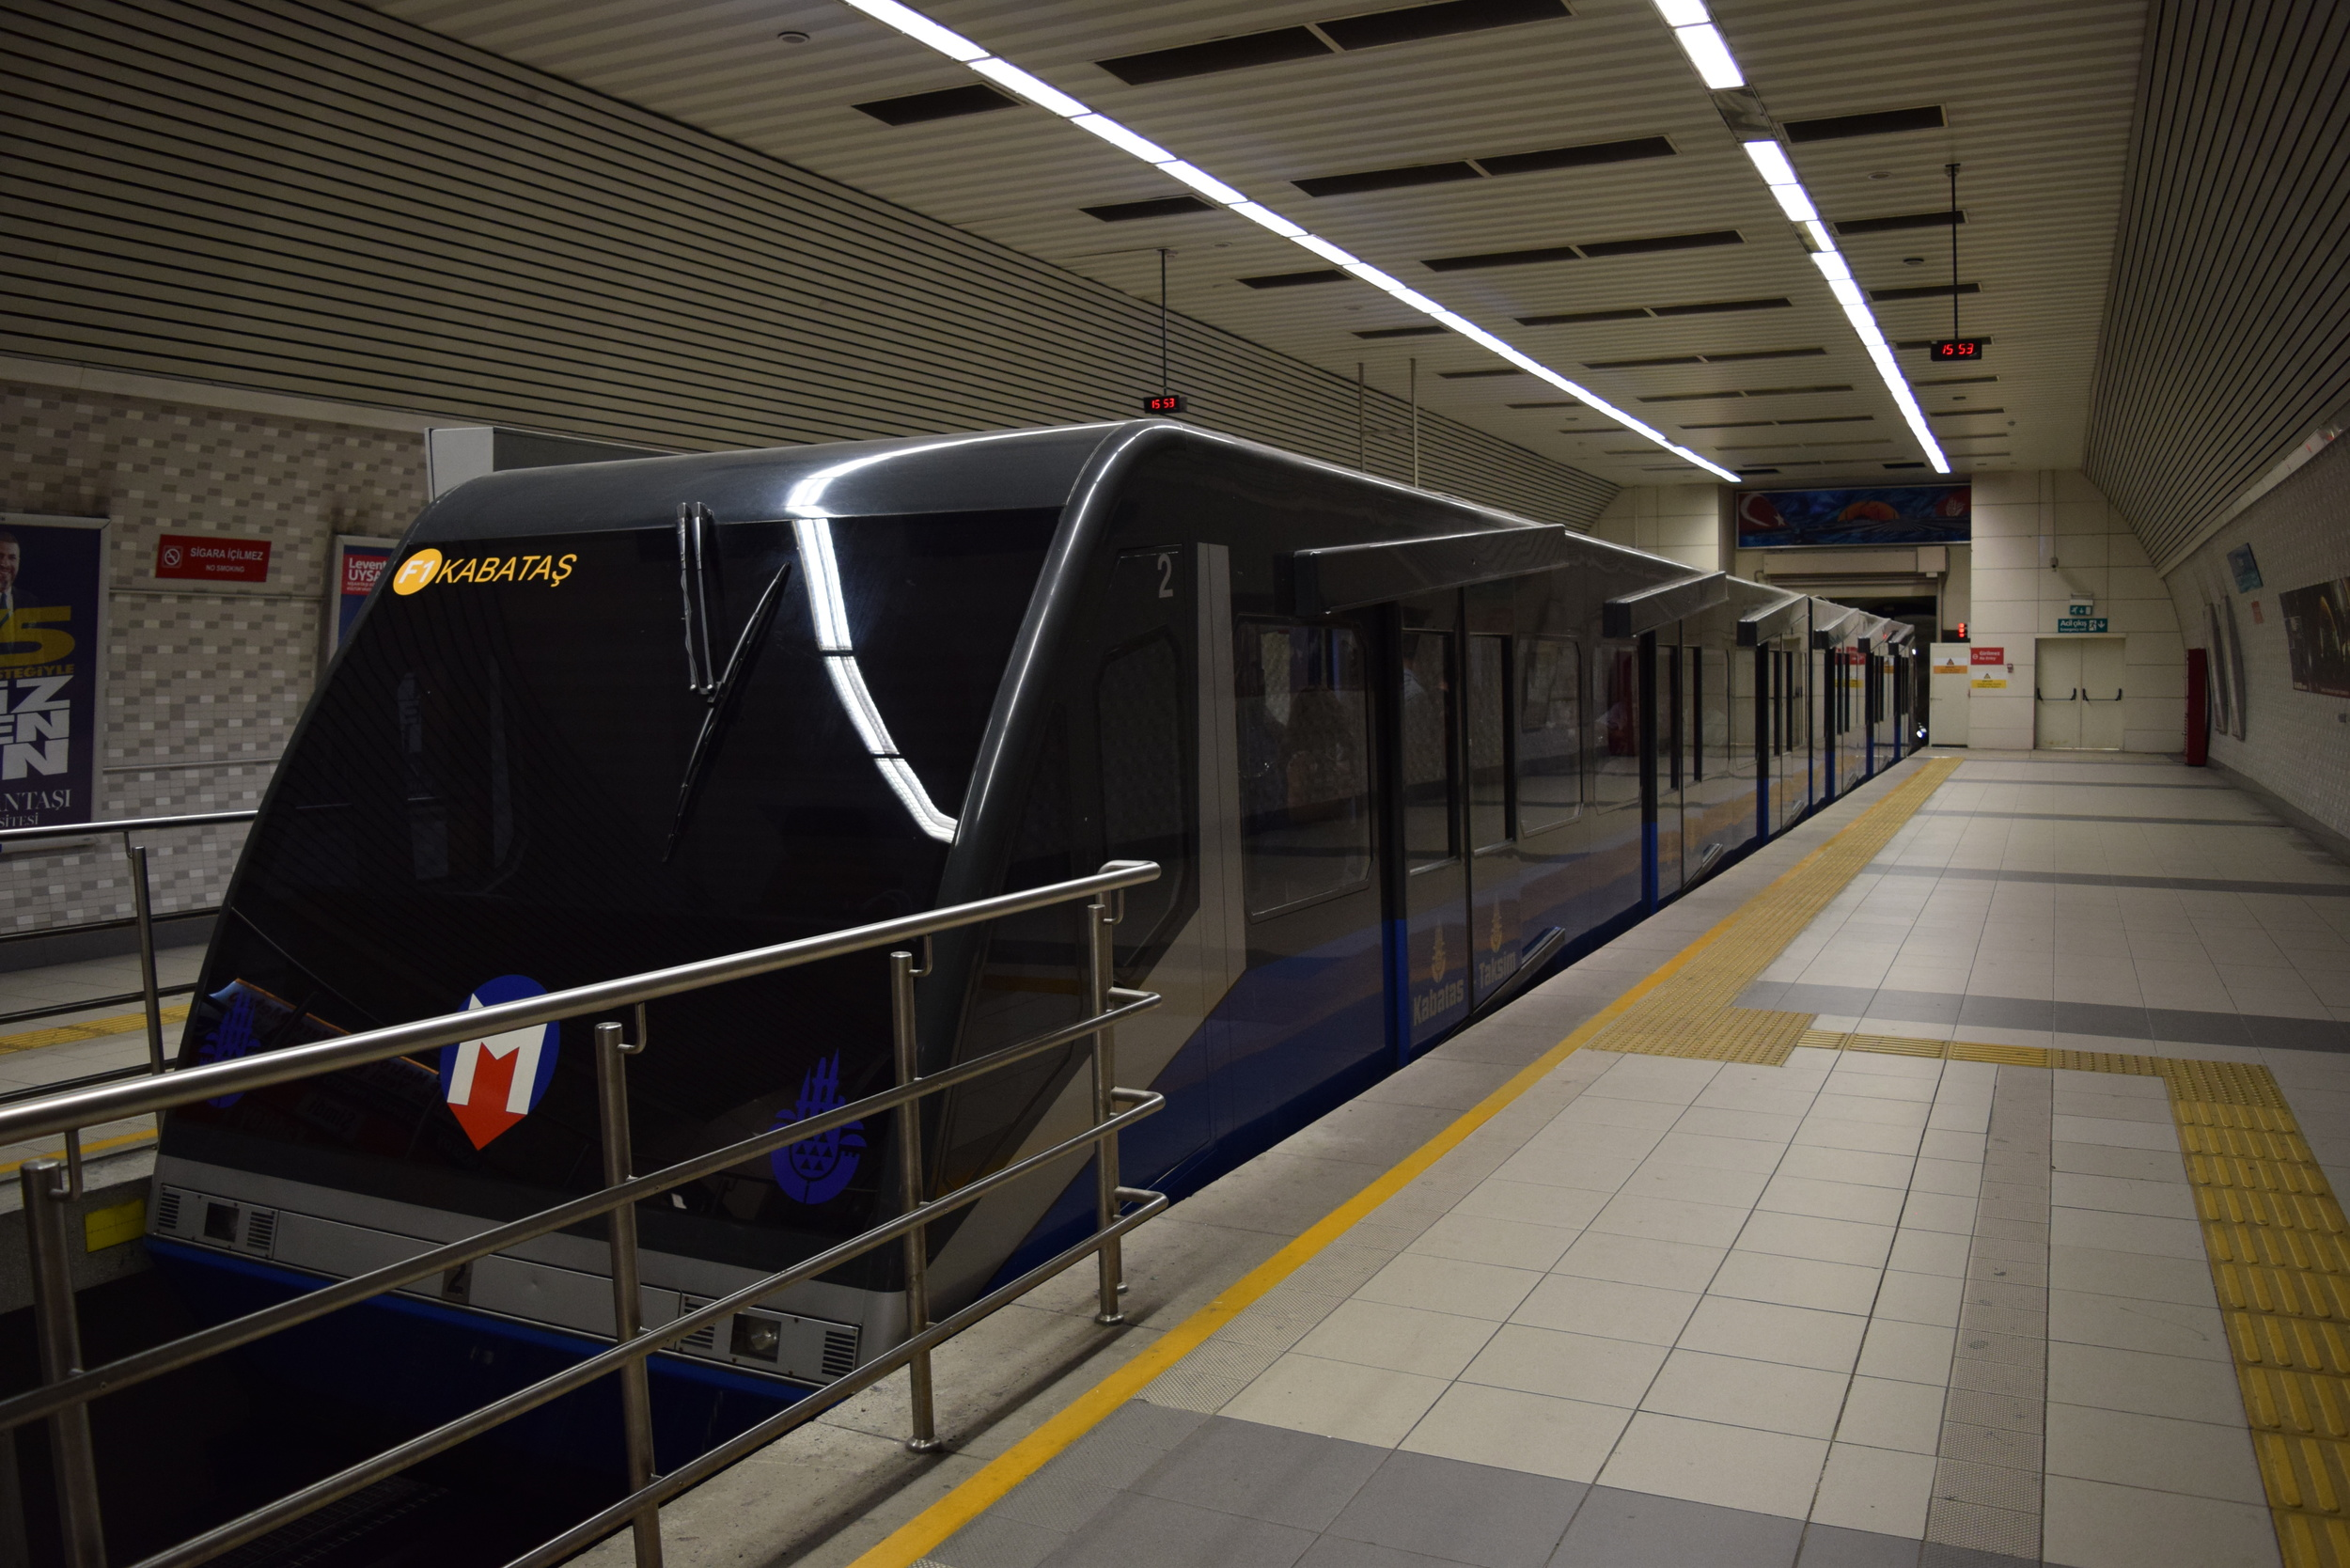 The Taksim Funicular Train